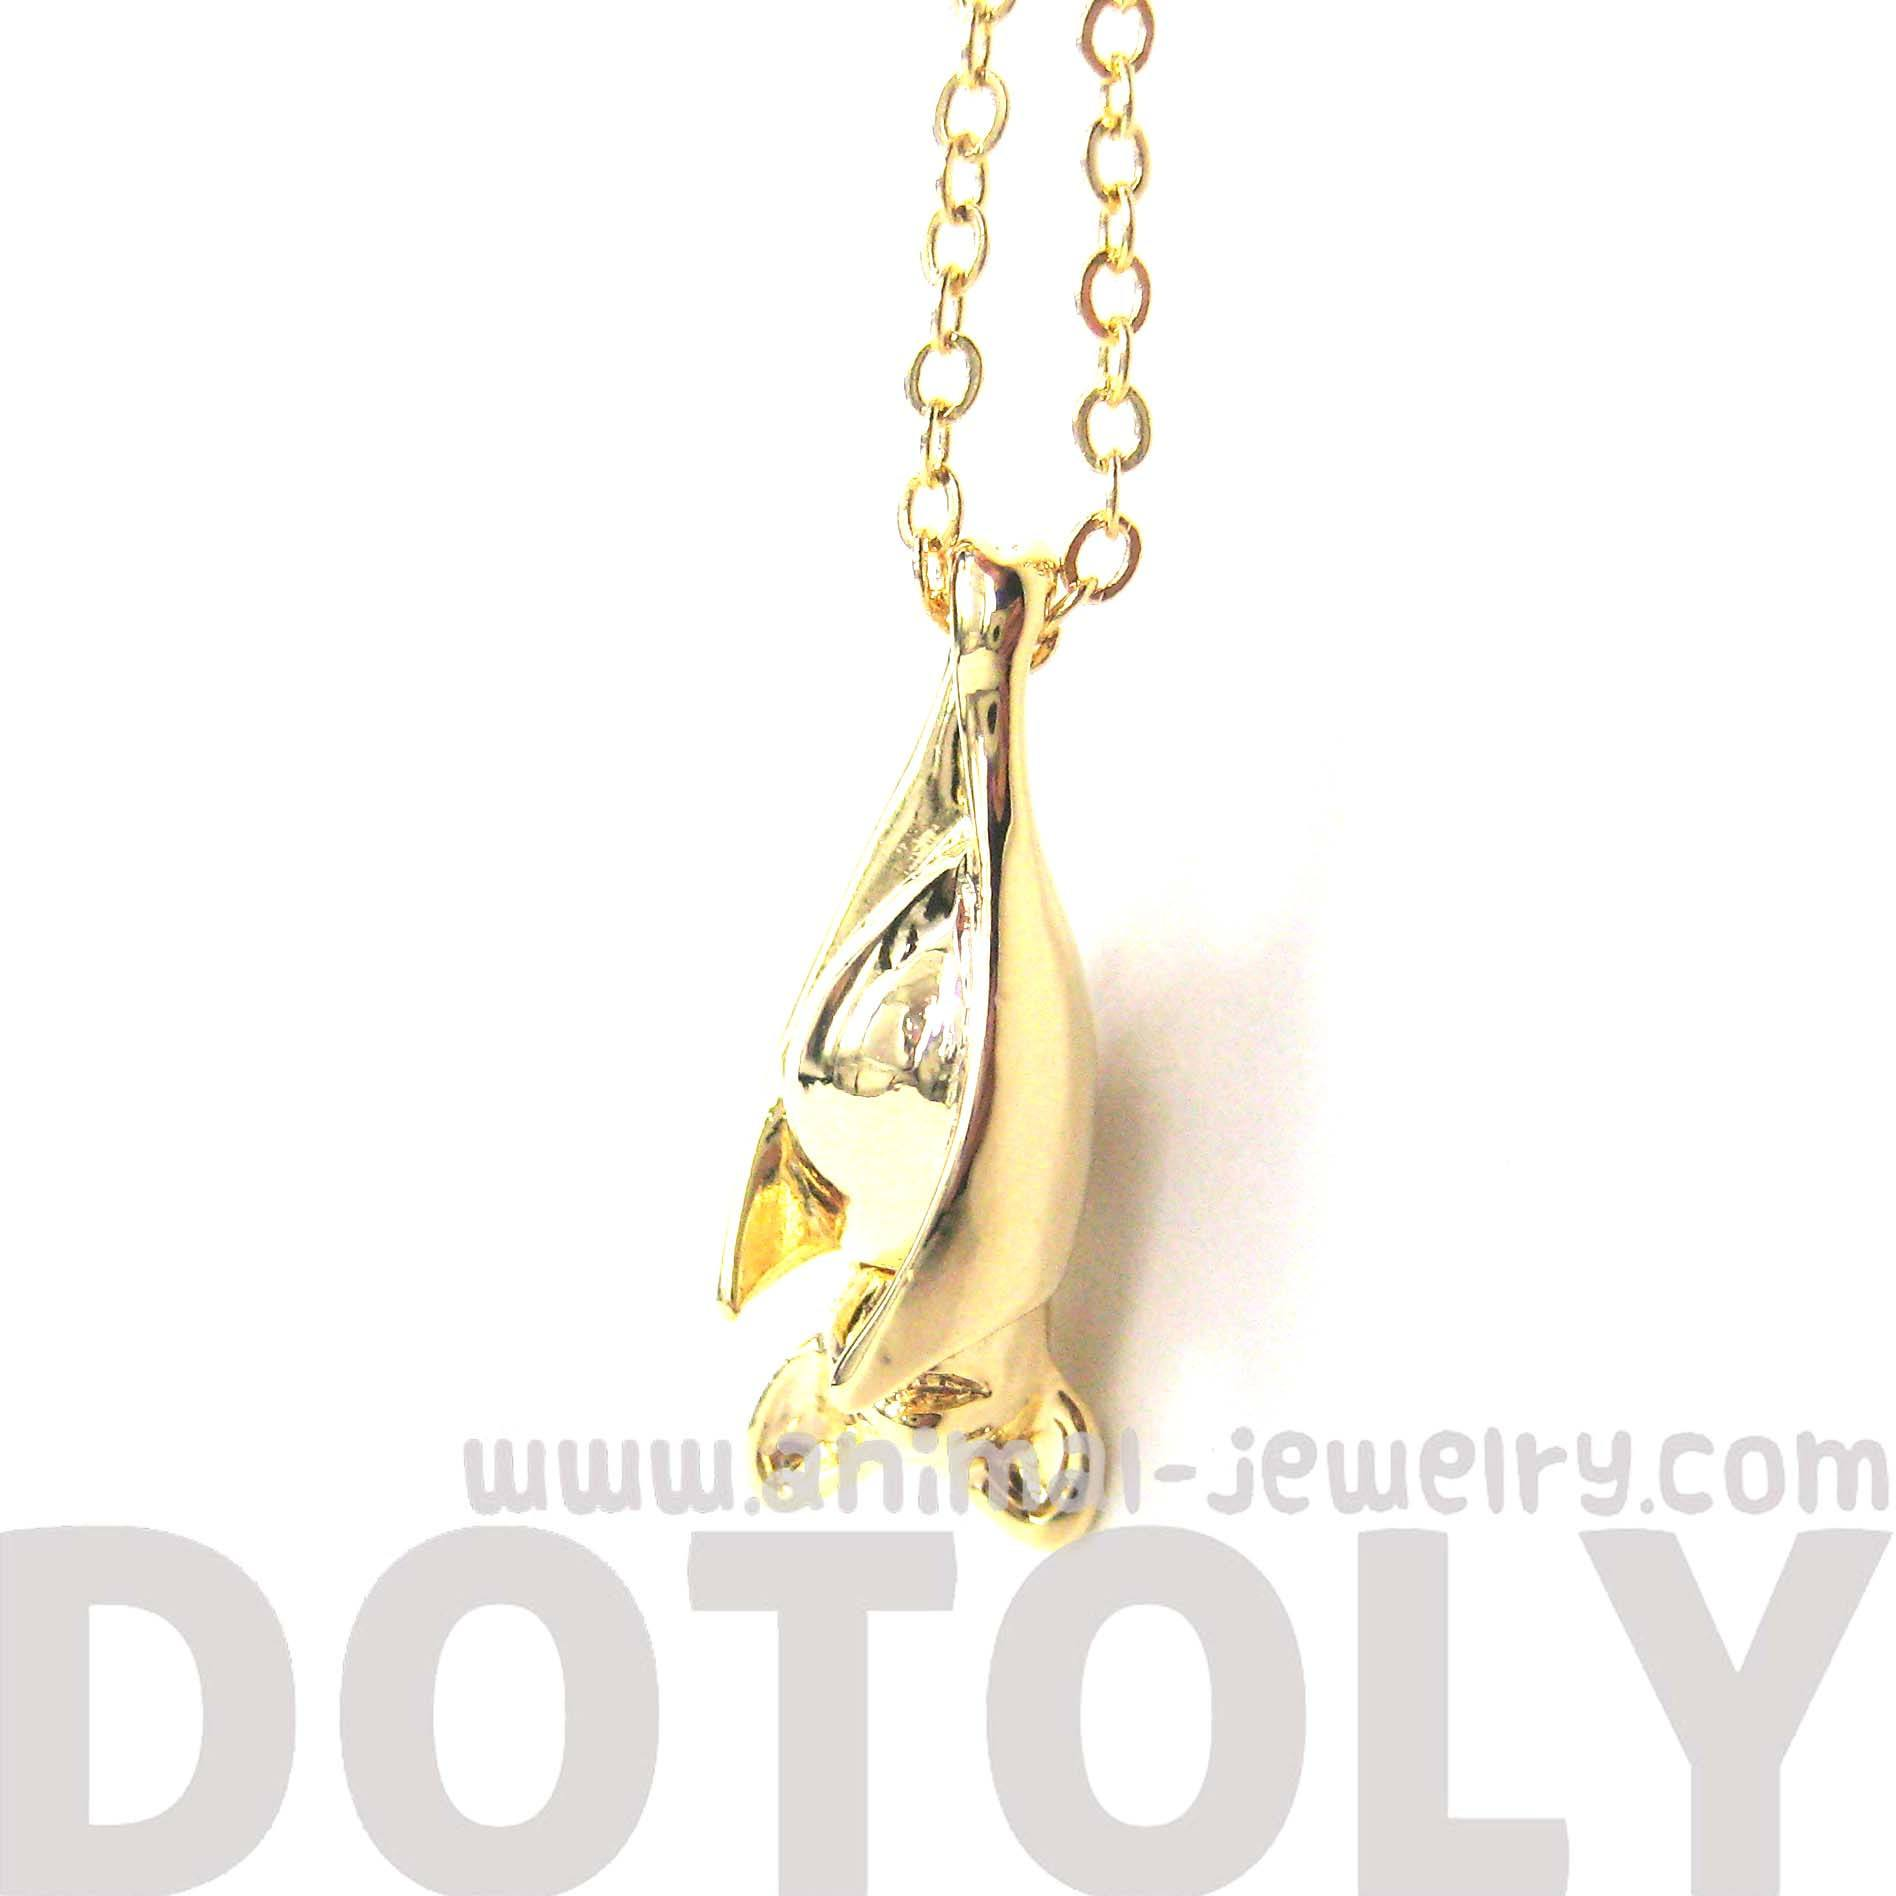 sleek-abstract-bat-shaped-animal-pendant-necklace-in-gold-dotoly